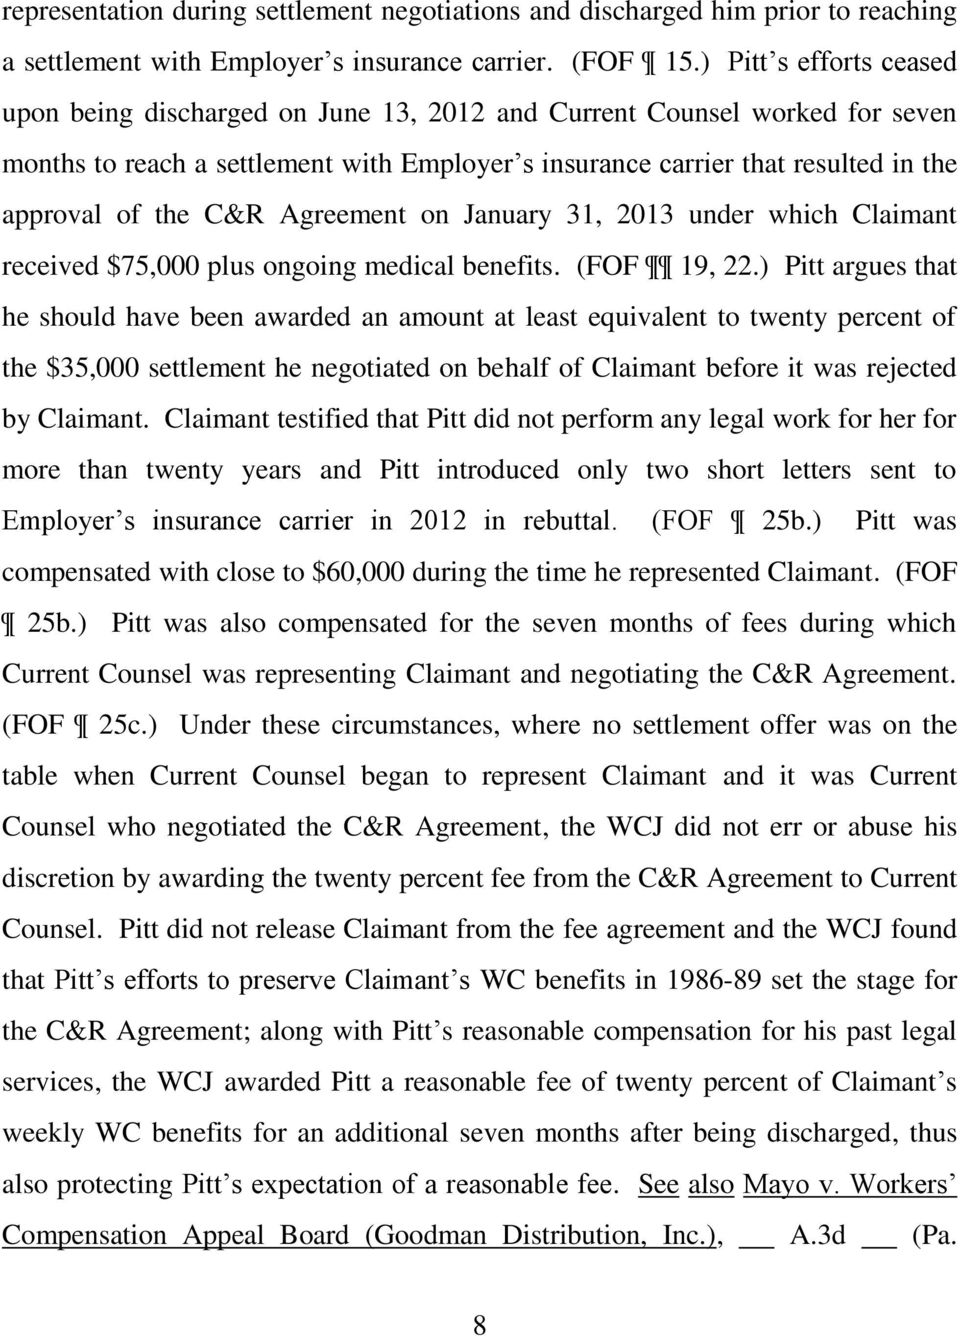 C&R Agreement on January 31, 2013 under which Claimant received $75,000 plus ongoing medical benefits. (FOF 19, 22.